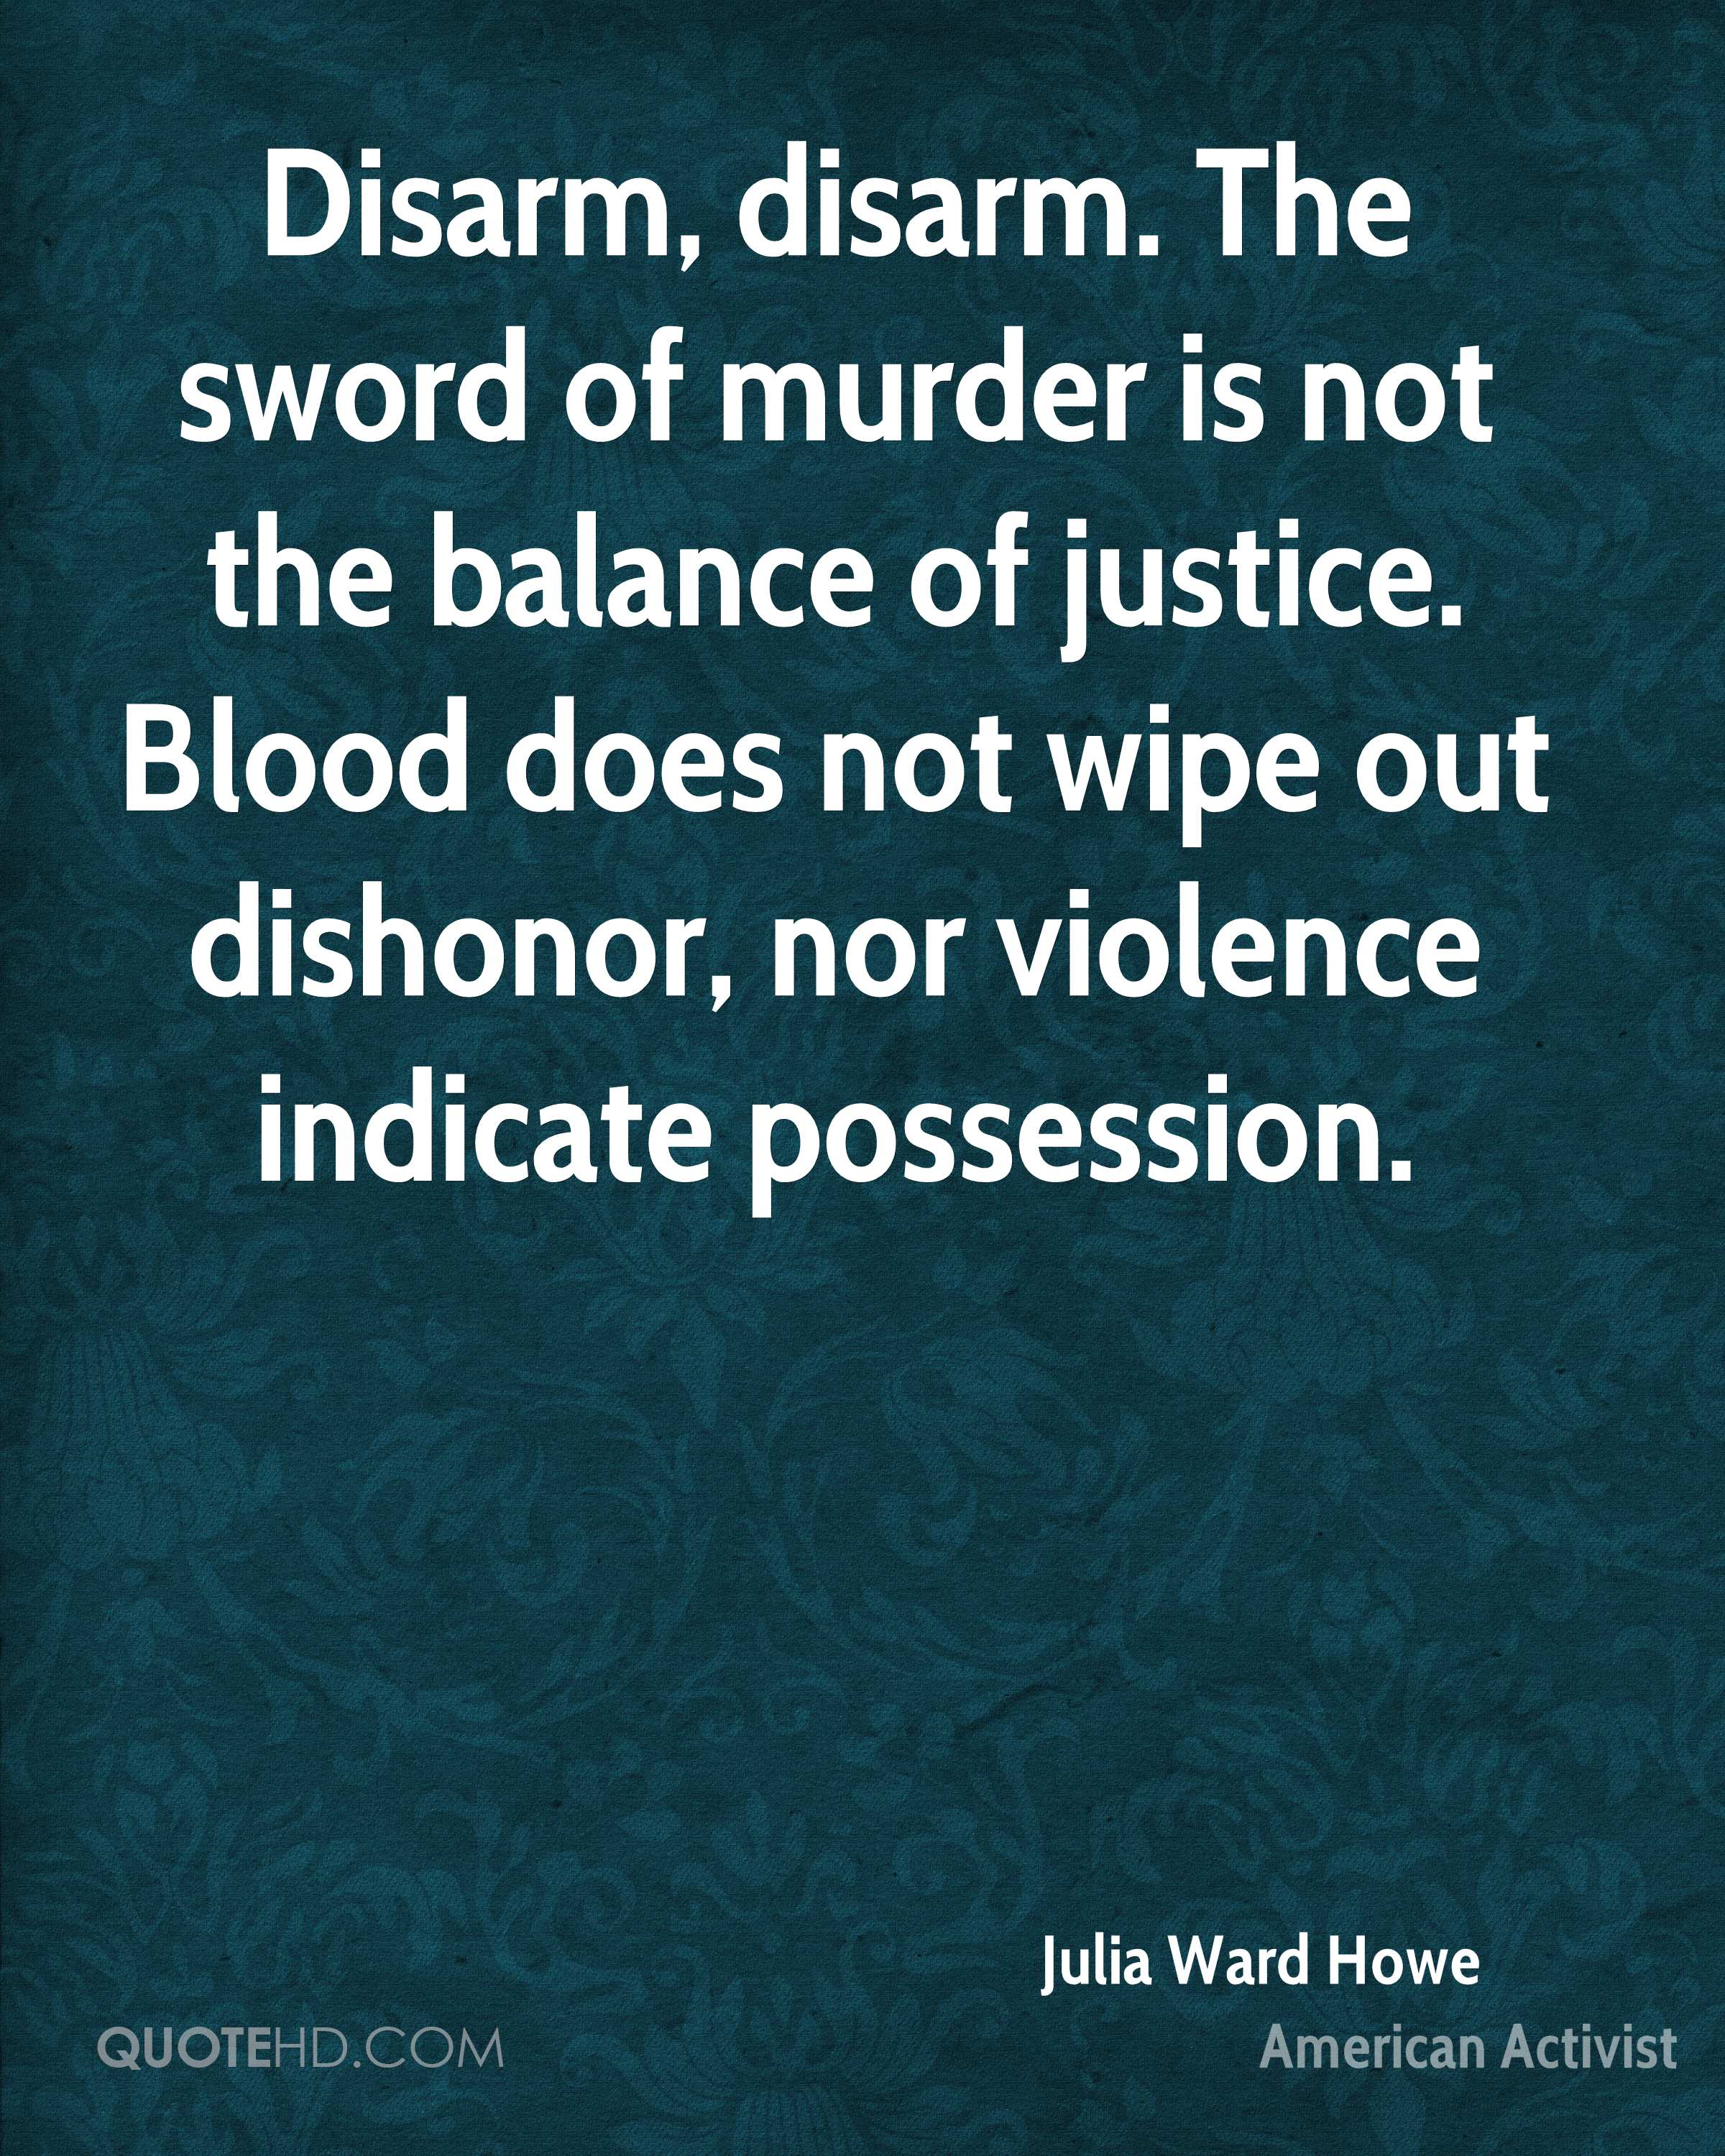 Disarm, disarm. The sword of murder is not the balance of justice. Blood does not wipe out dishonor, nor violence indicate possession.